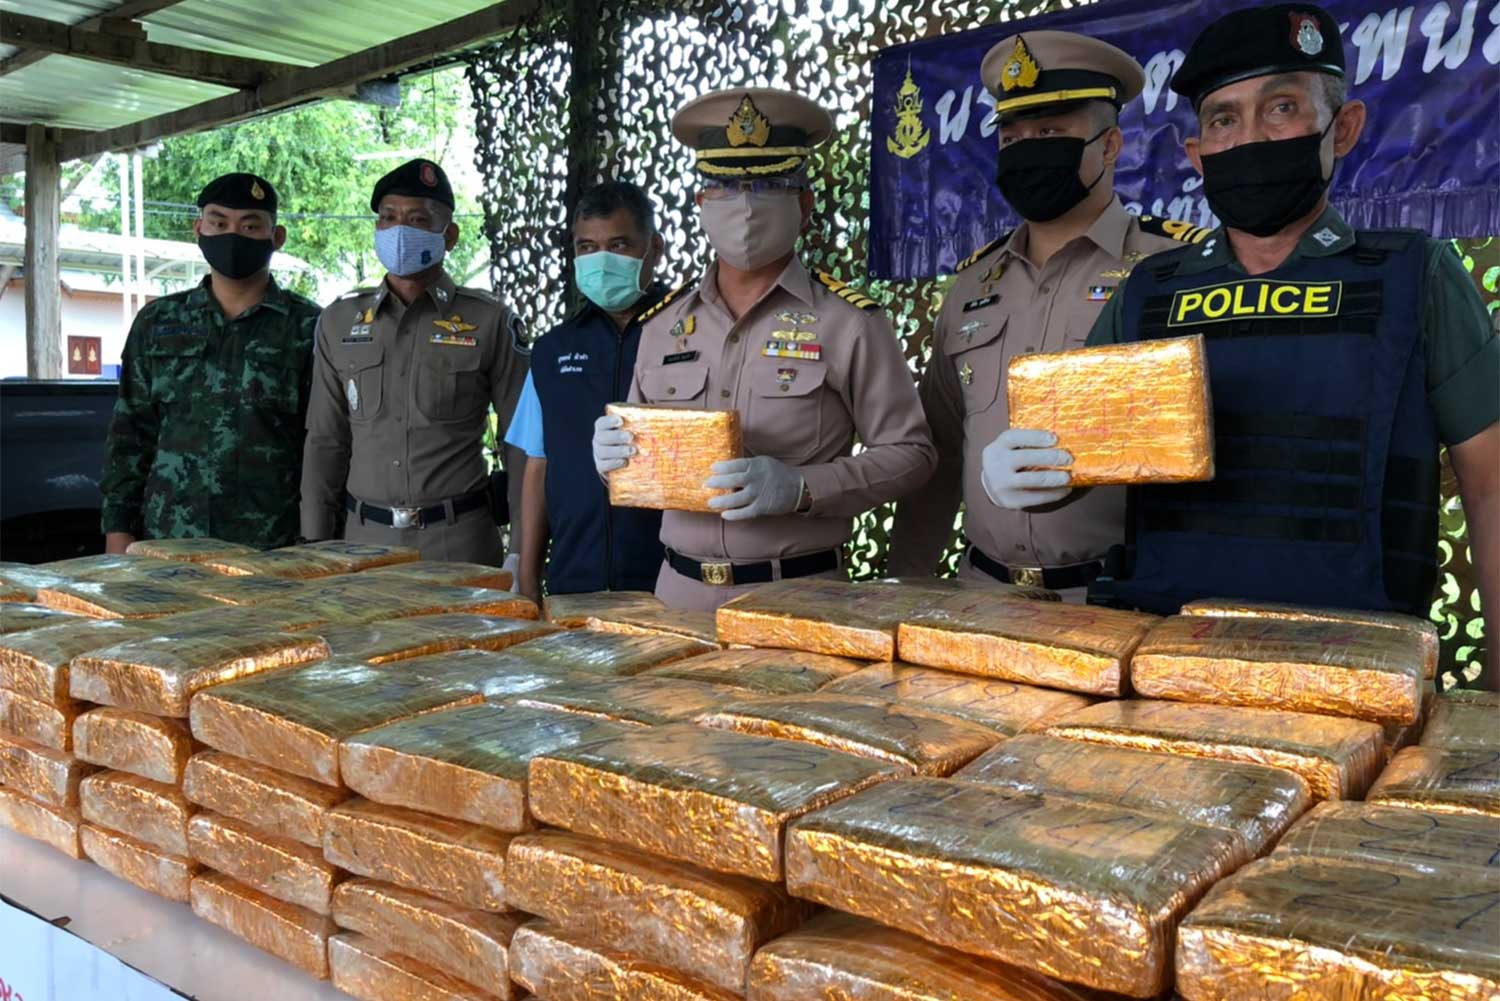 Navy officers display compressed marijuana seized in That Phanom district of Nakhon Phanom. (Photo: Pattanapong Sripiachai)